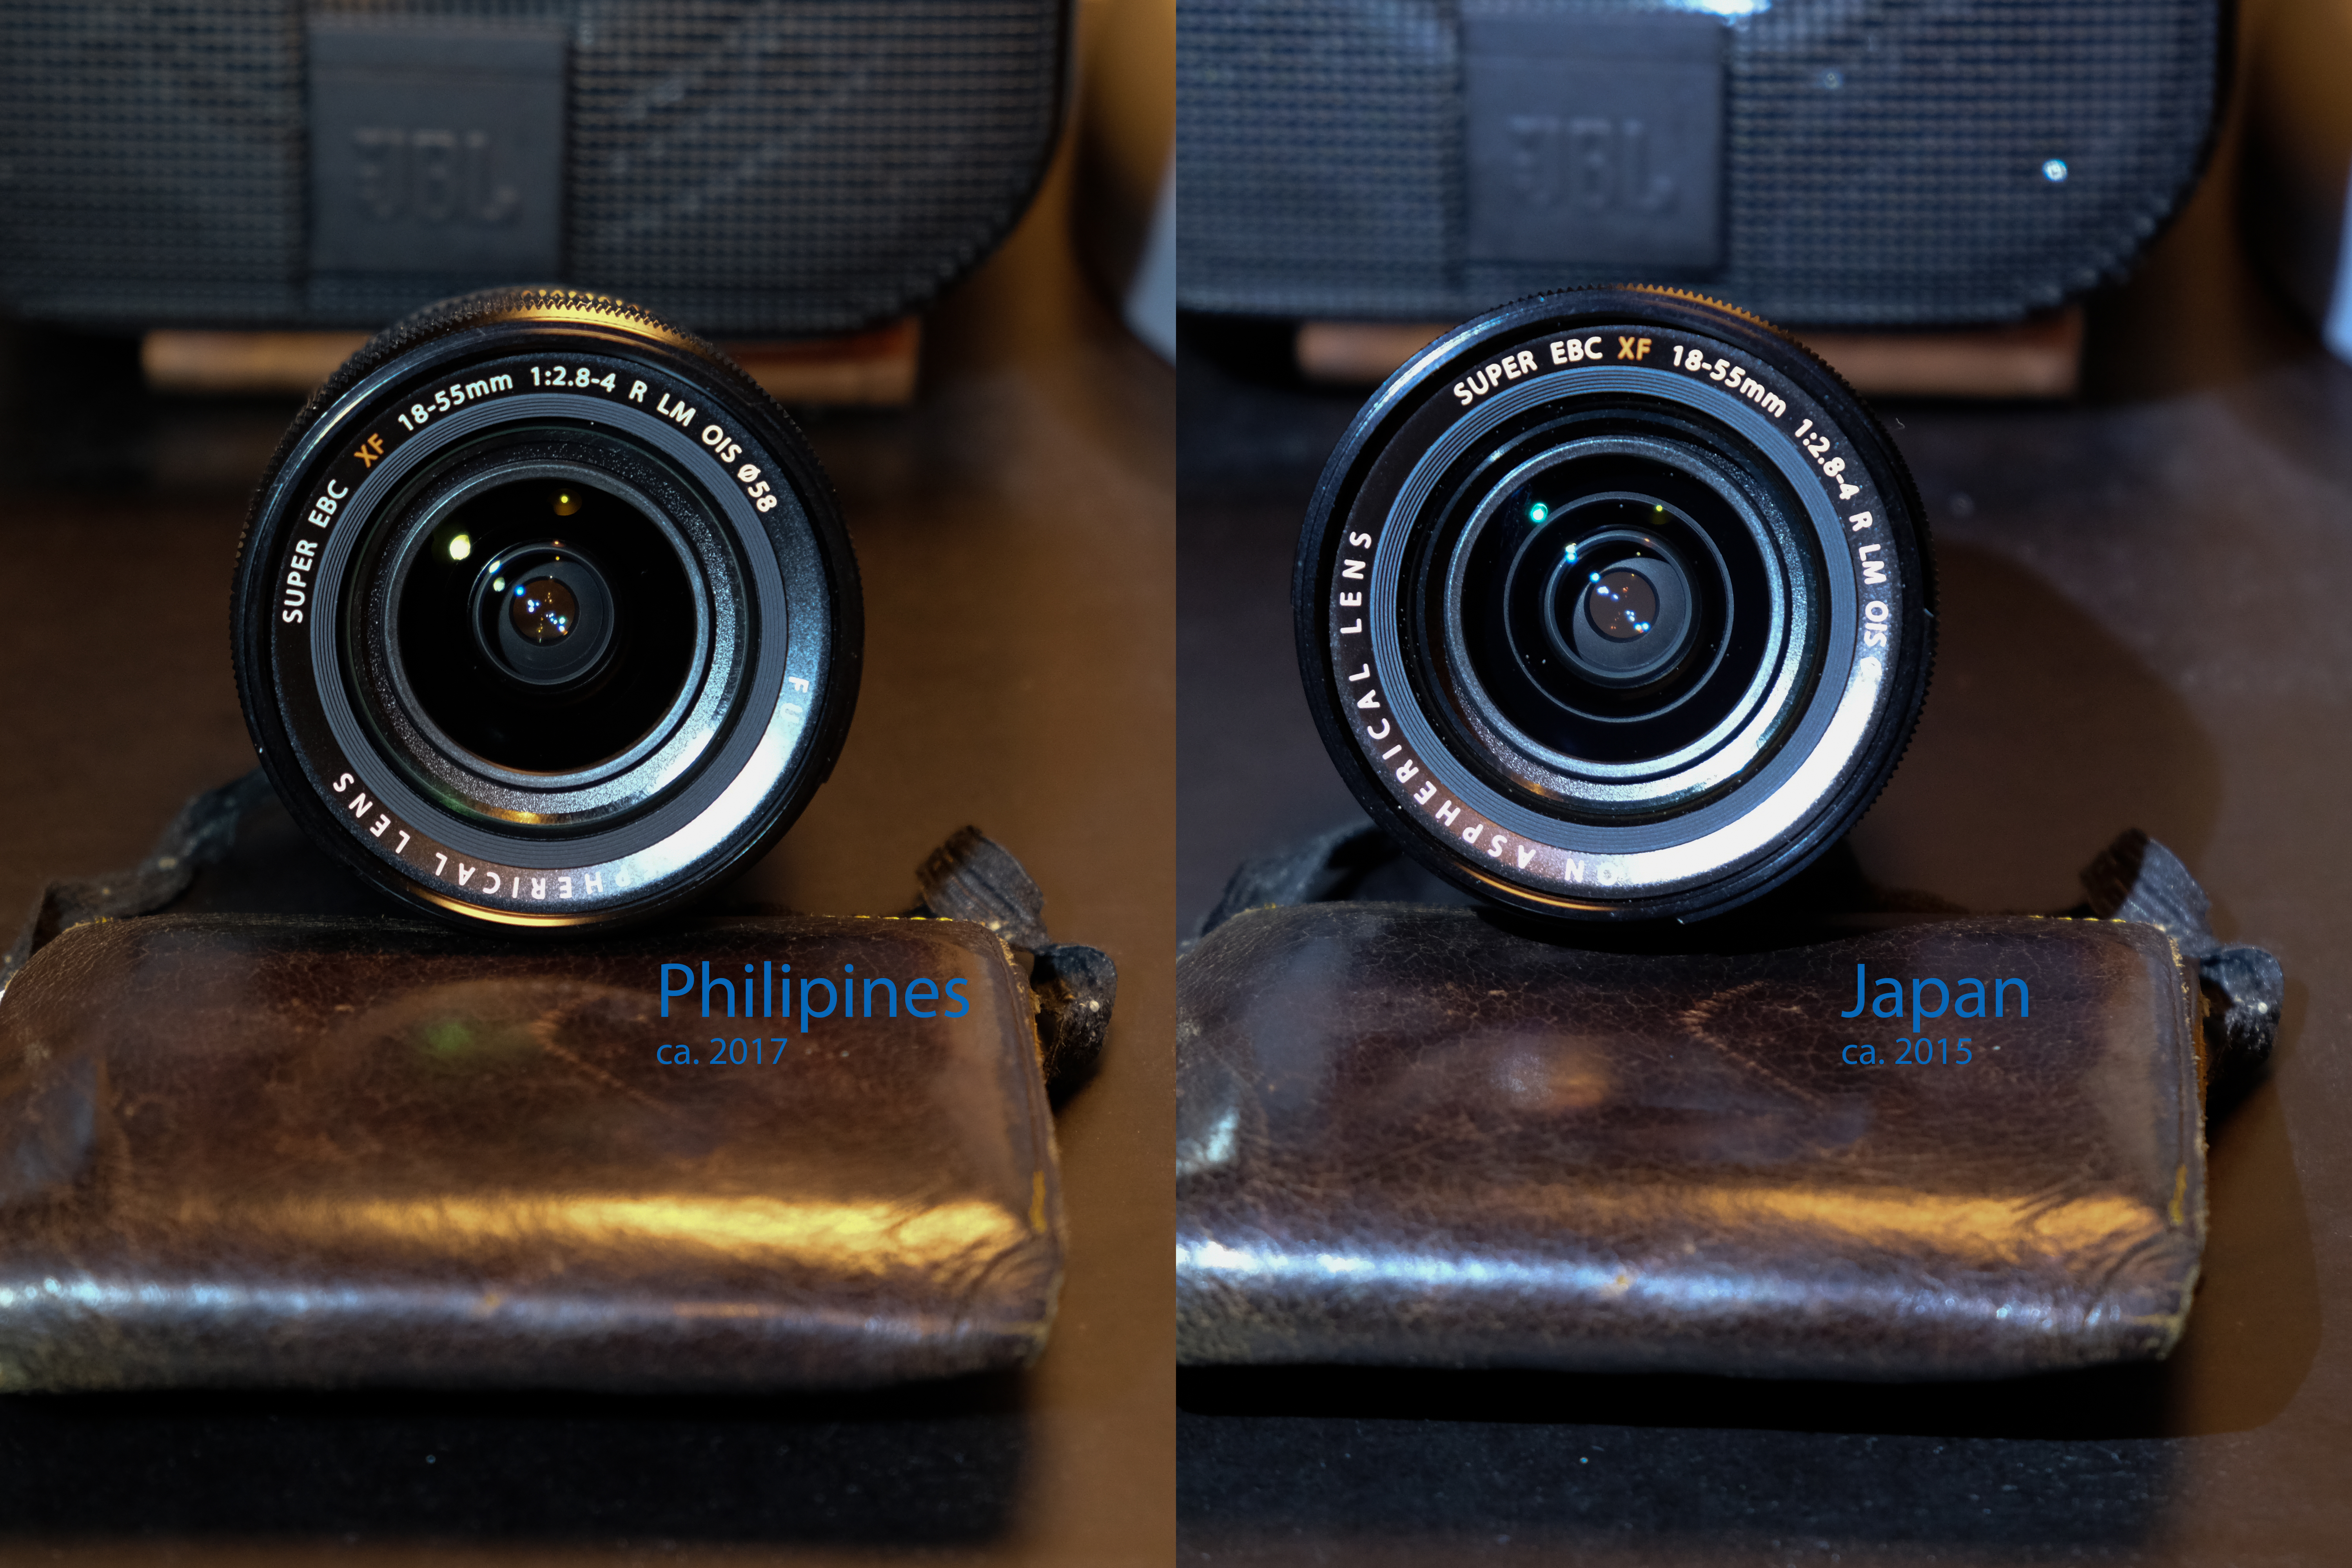 Different Versions Of Xf 18 55 Need Some Advice Fujifilm X Fujinon Xf18 55mm F28 4 R Lm Ois View Original Size